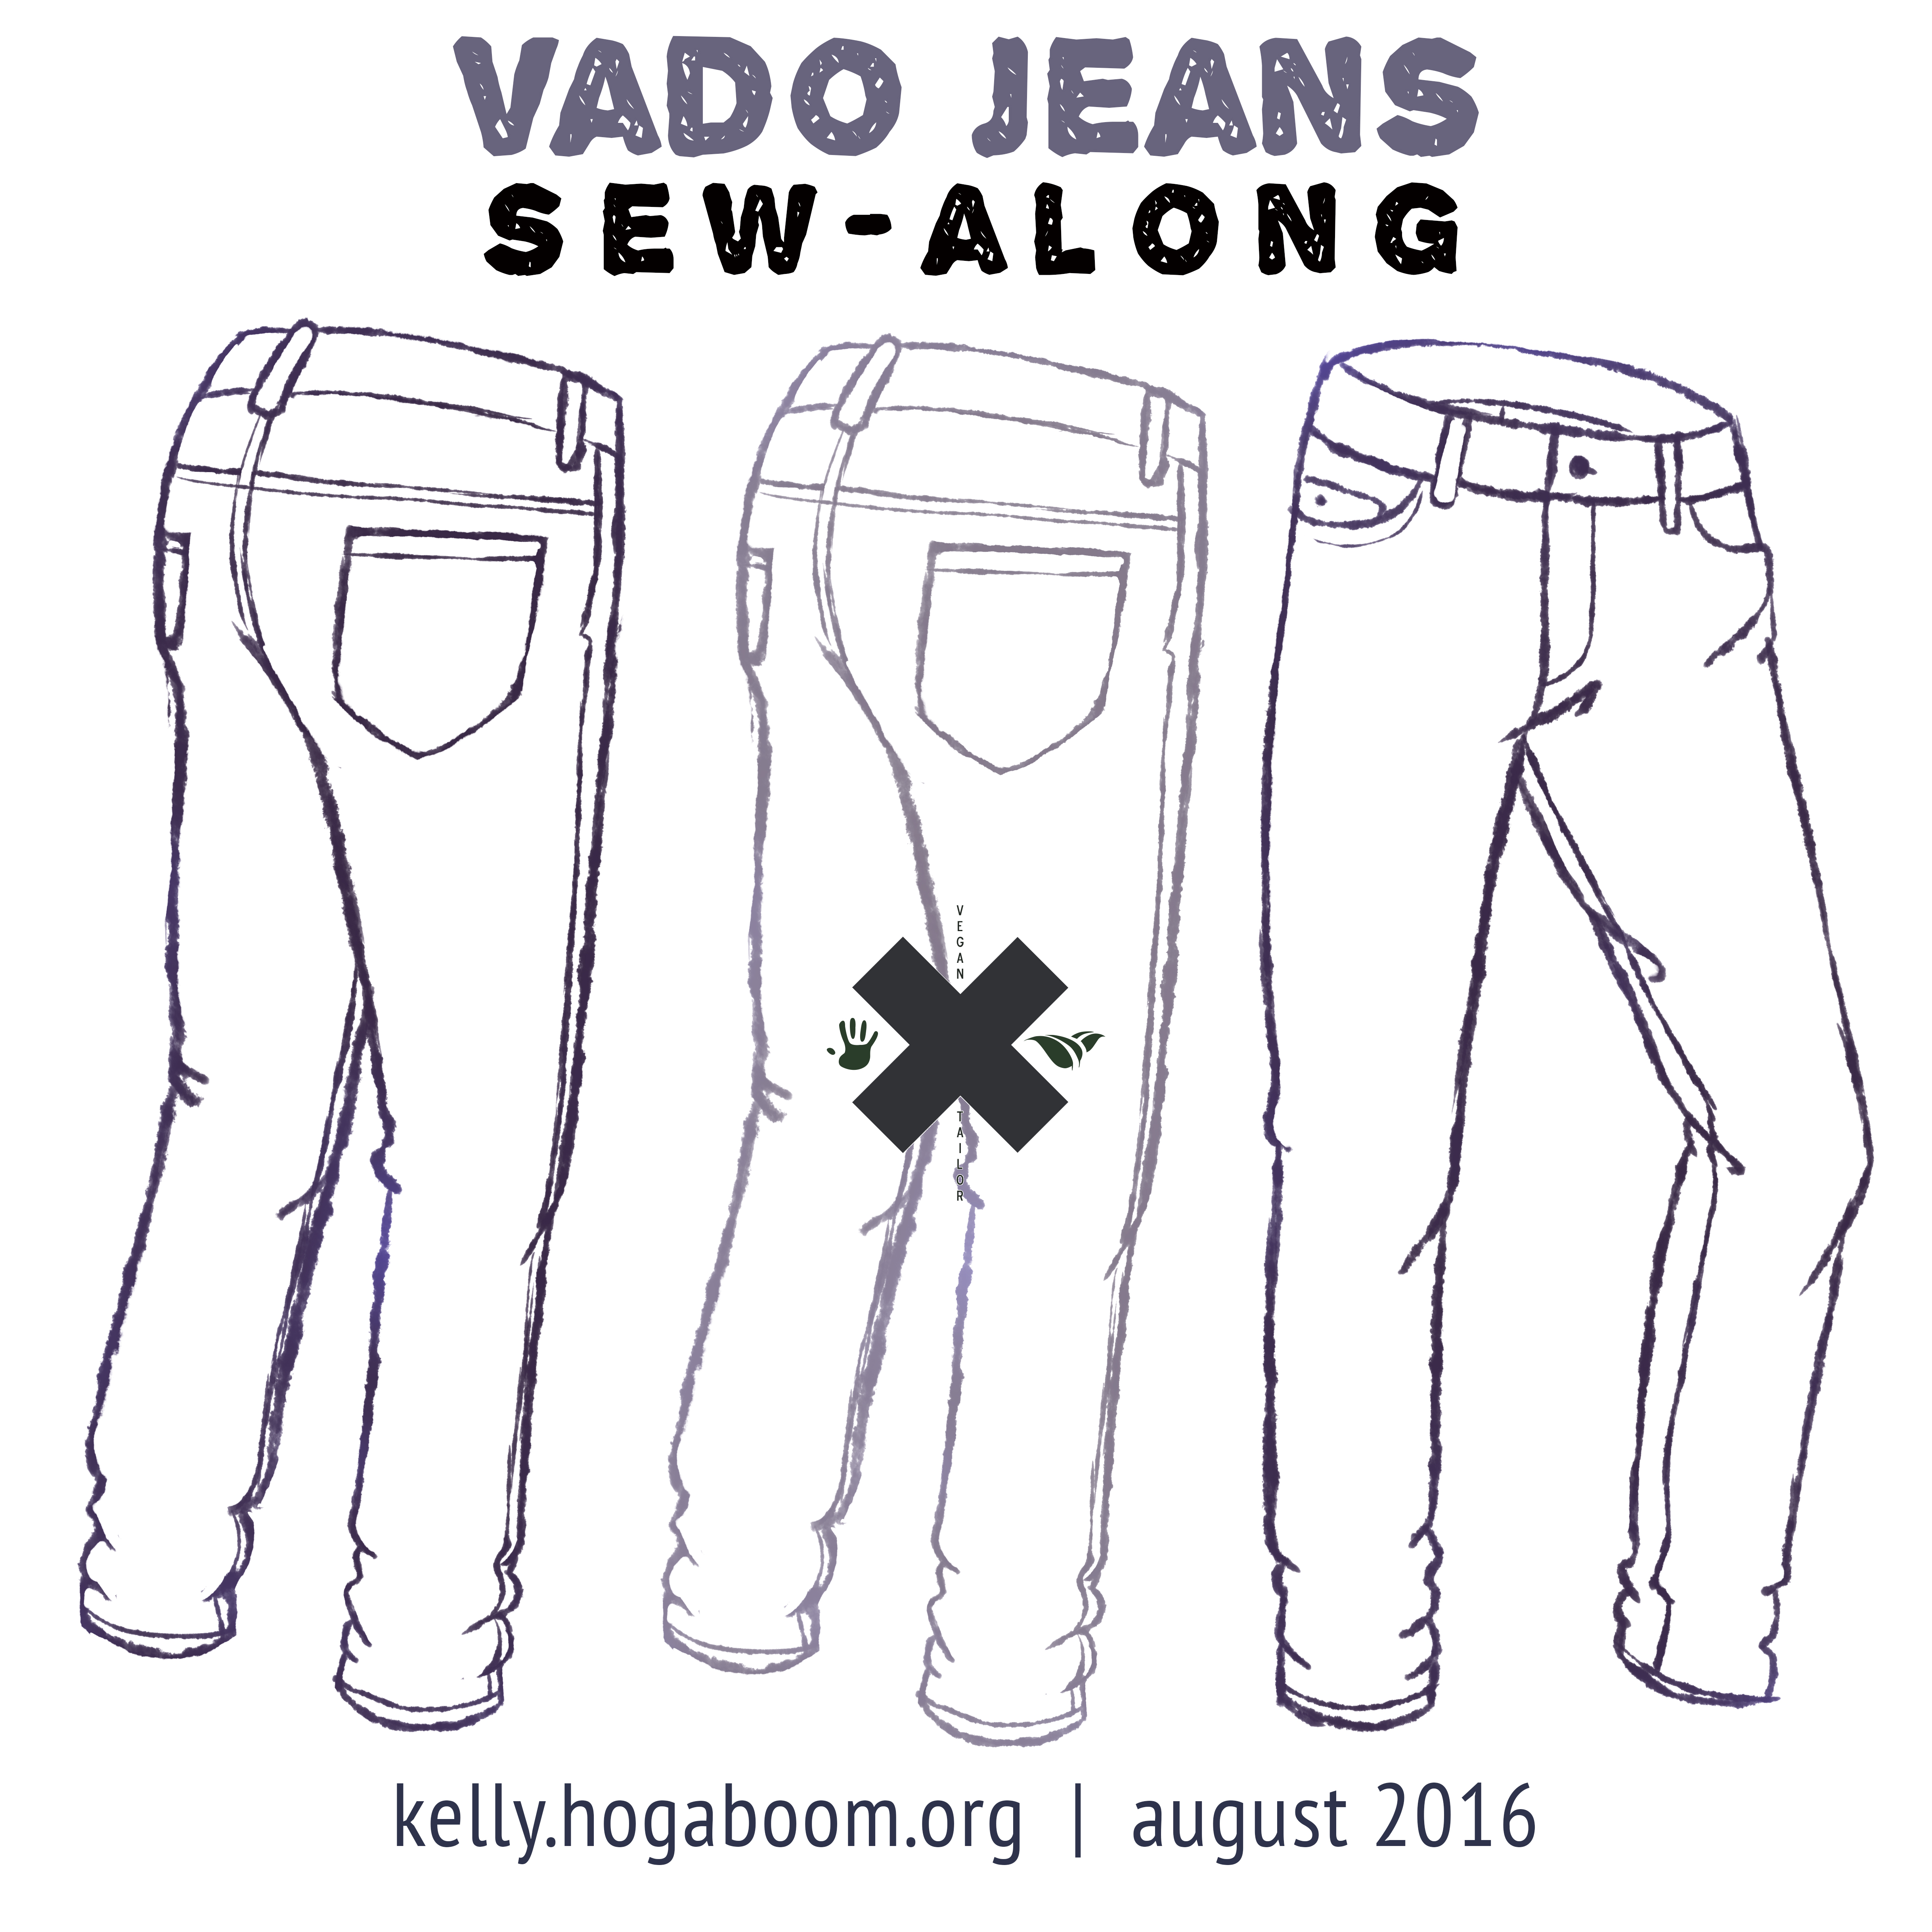 vado jeans sew-along: pattern & materials prep; cutting & marking